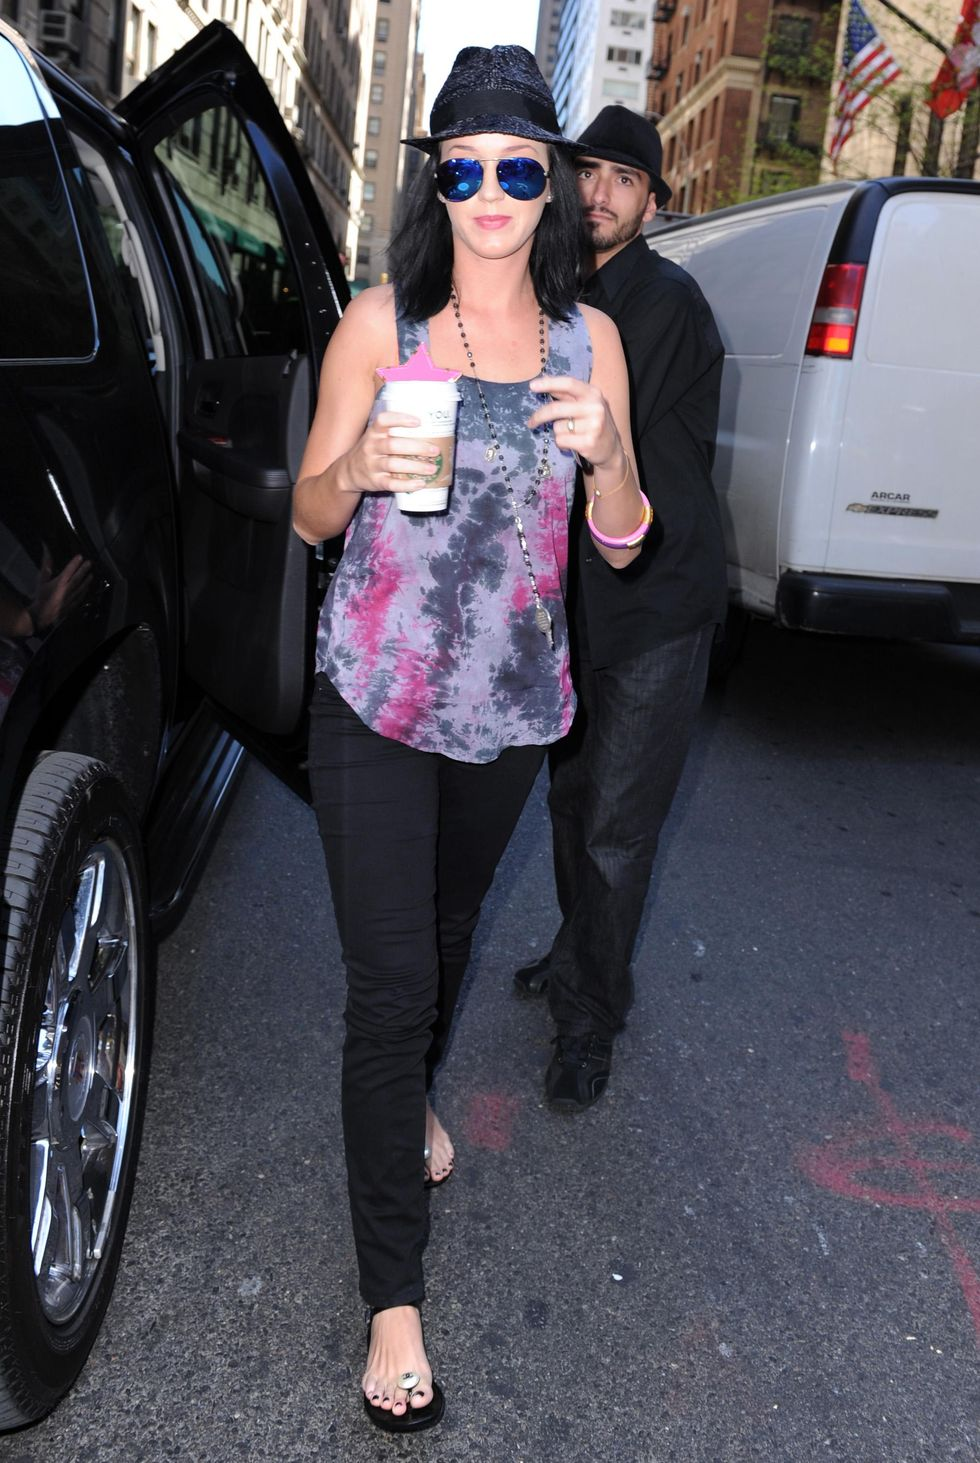 Katy Perry 2010 : katy-perry-candids-in-nyc-04